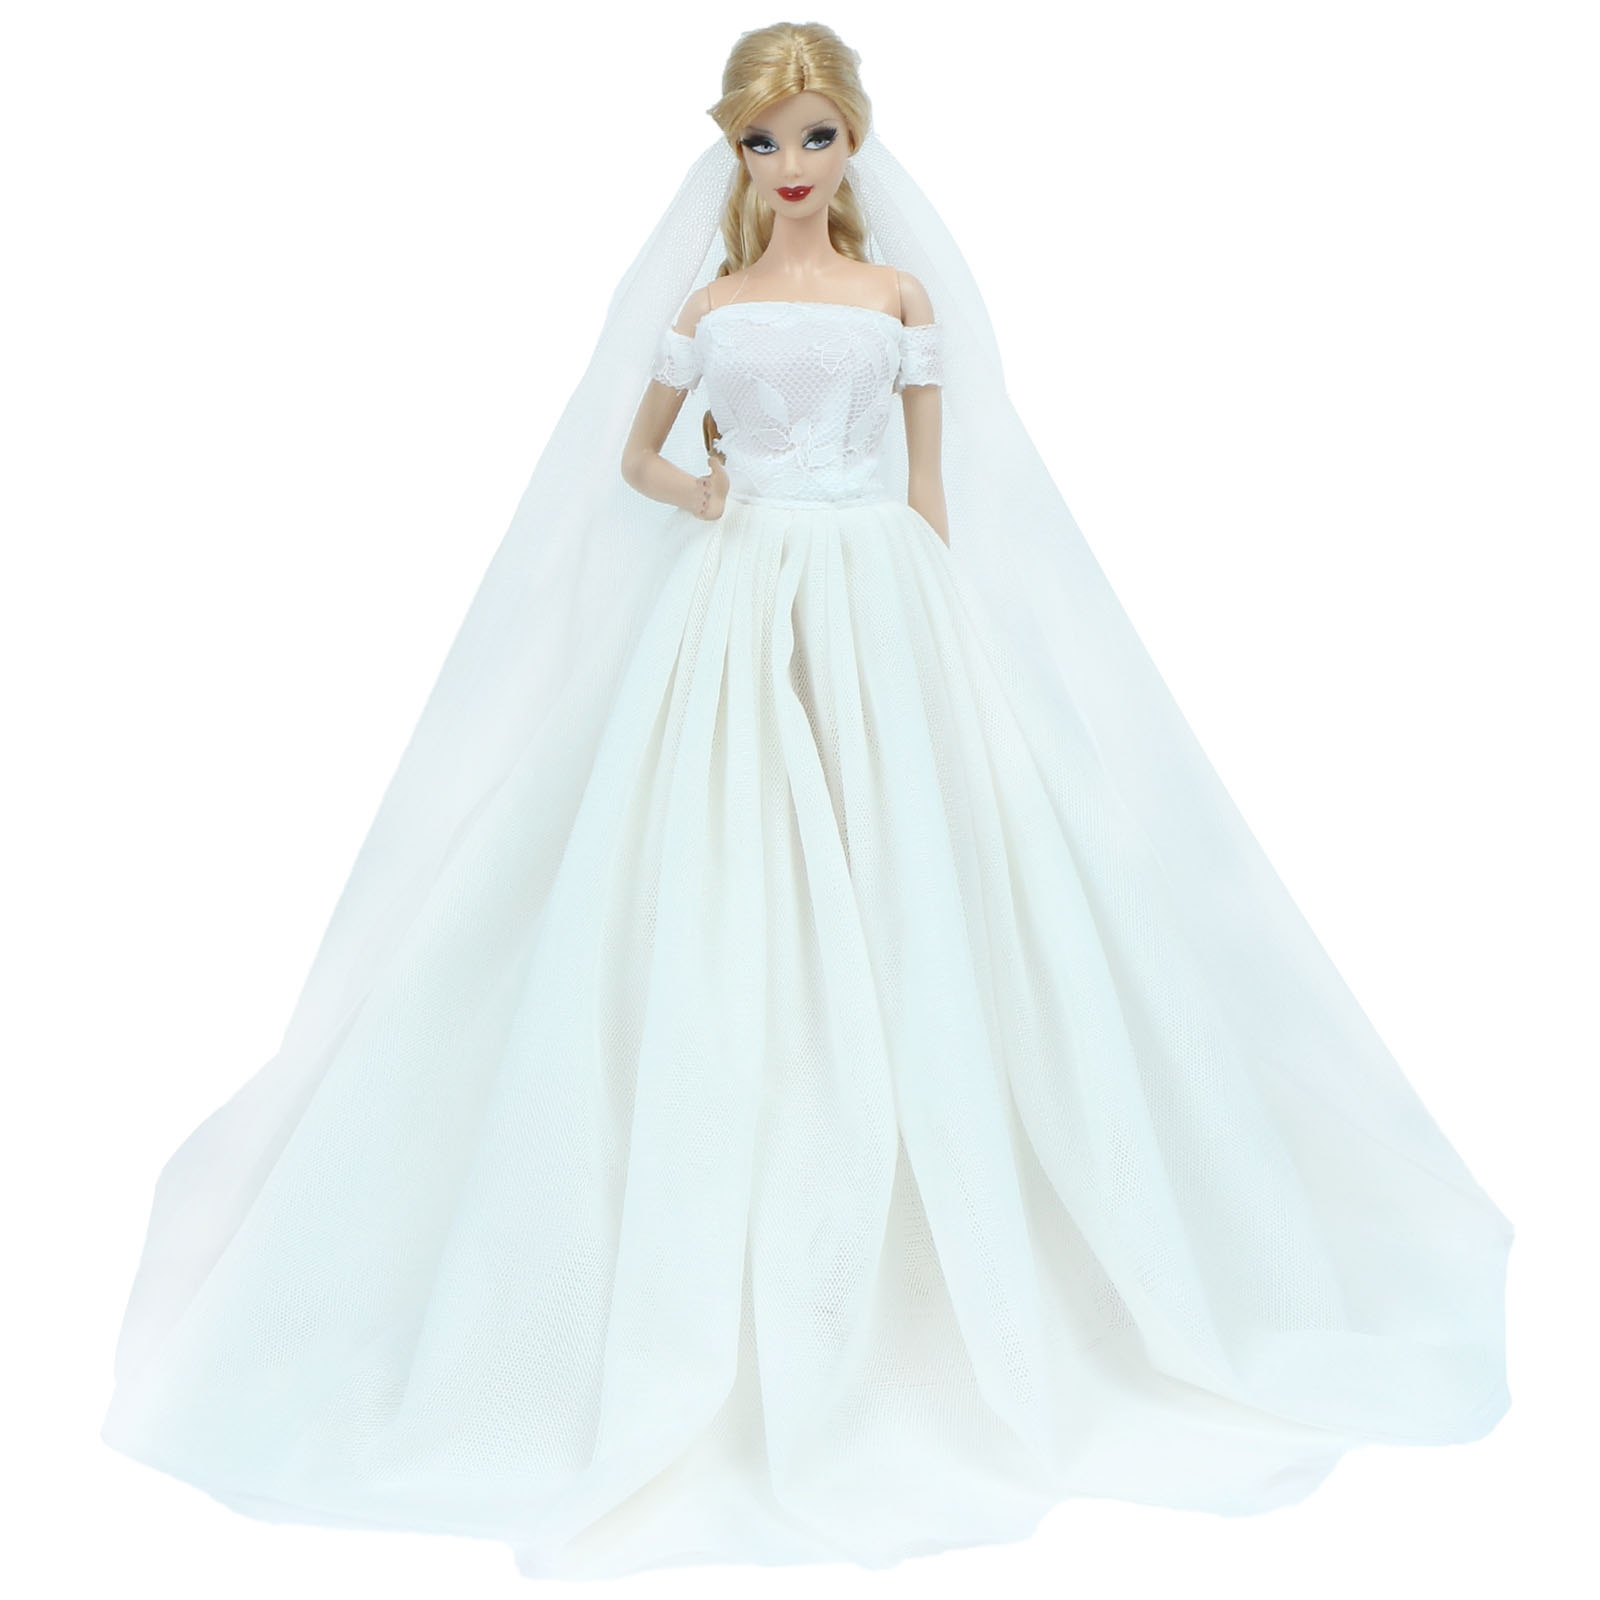 High Quality Dress White Wedding Party Princess Gown Elegant Skirt White Head Veil Clothes For Barbie Doll Accessories Baby Toy